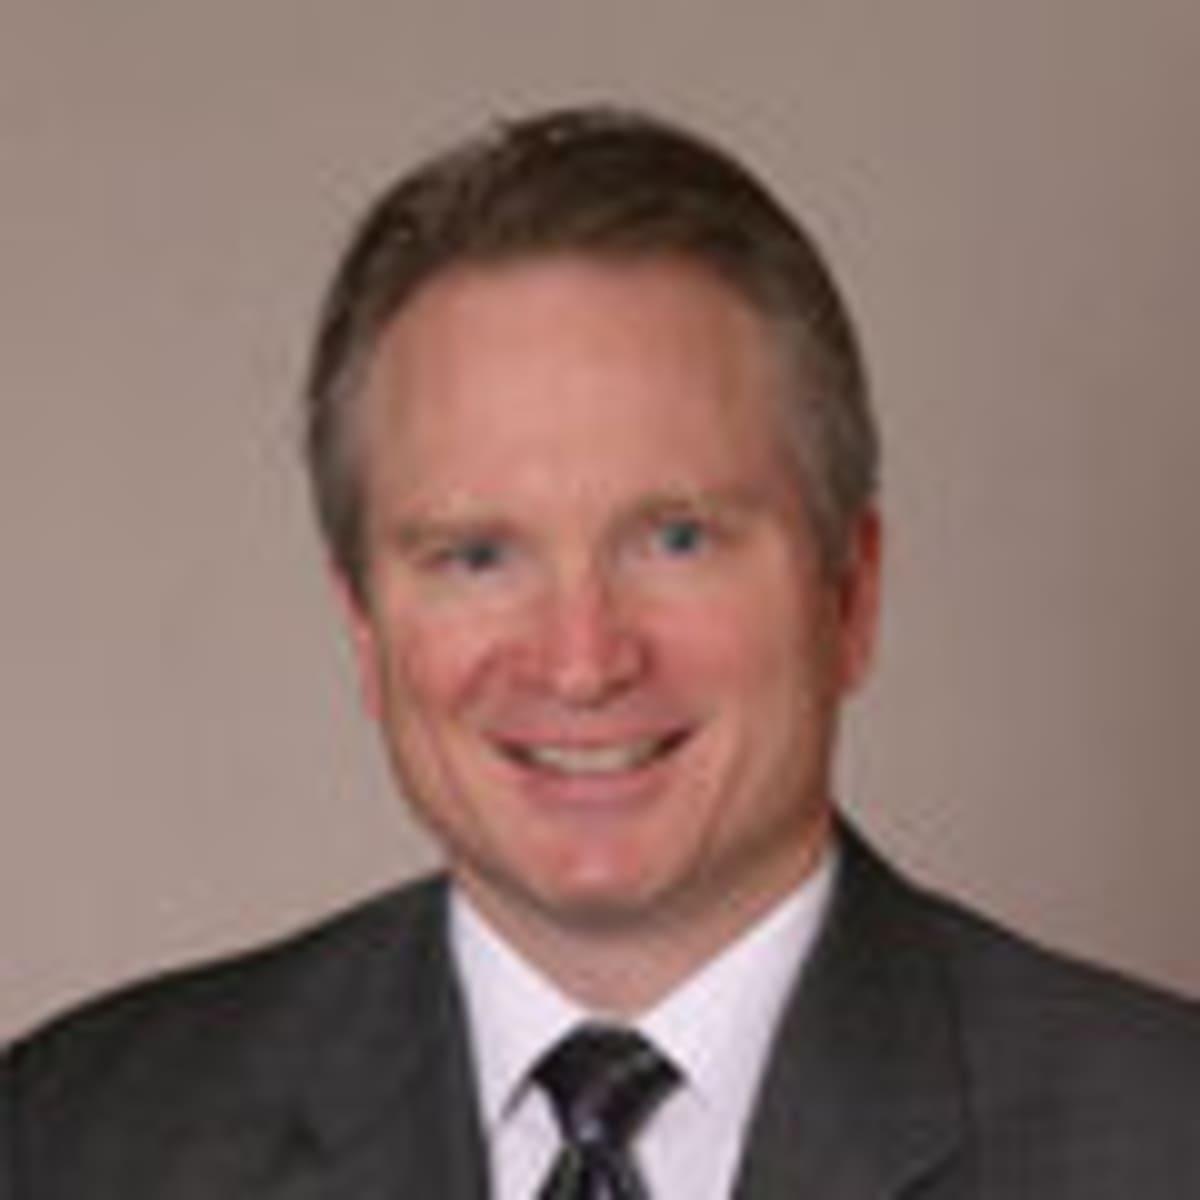 Dr. Jay Oaks, DO is a vascular surgery specialist in Williamsport, PA and has been practicing for 24 years. He graduated from Oklahoma State Univ Center For Health Sciences College Of Osteopathic Medicine in and specializes in vascular surgery.